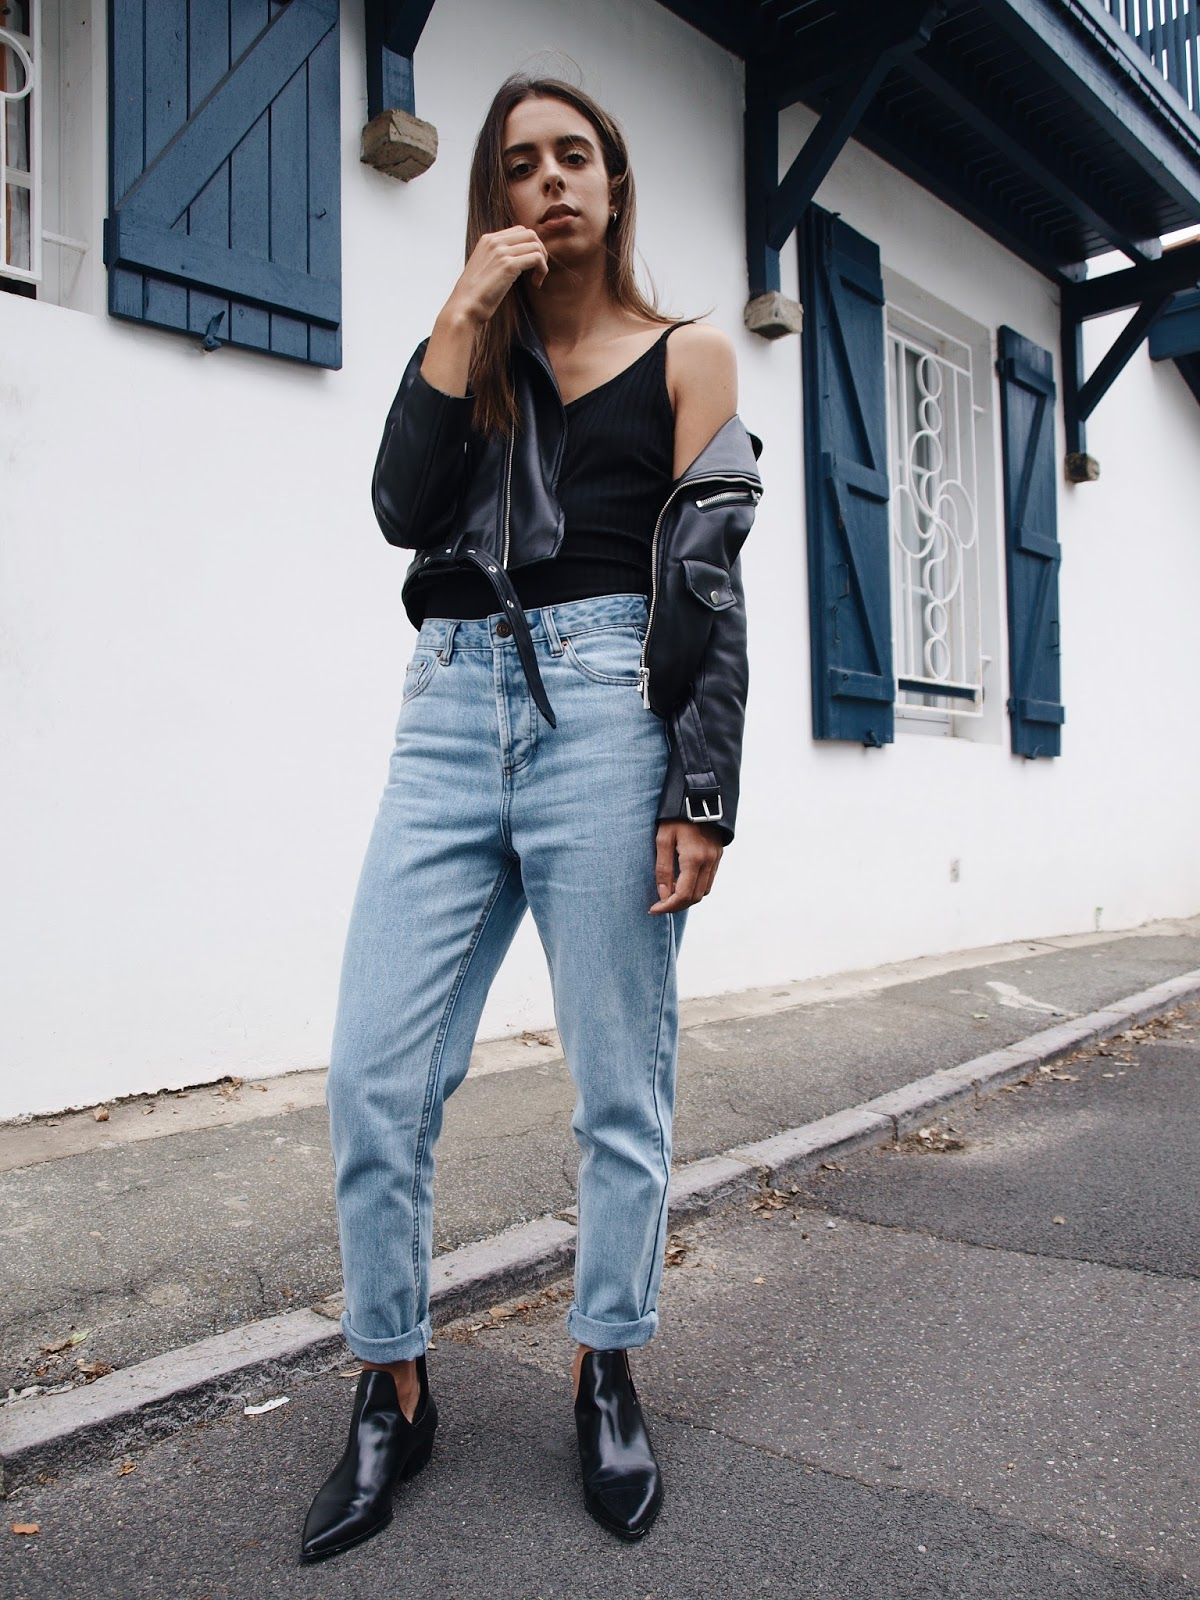 coastalandco-blog-hendaye-body-blackbody-momjean-501levis-perfecto-boots-blackboots-bottinesnoires-mode-fashion-90soutfit-blackhat